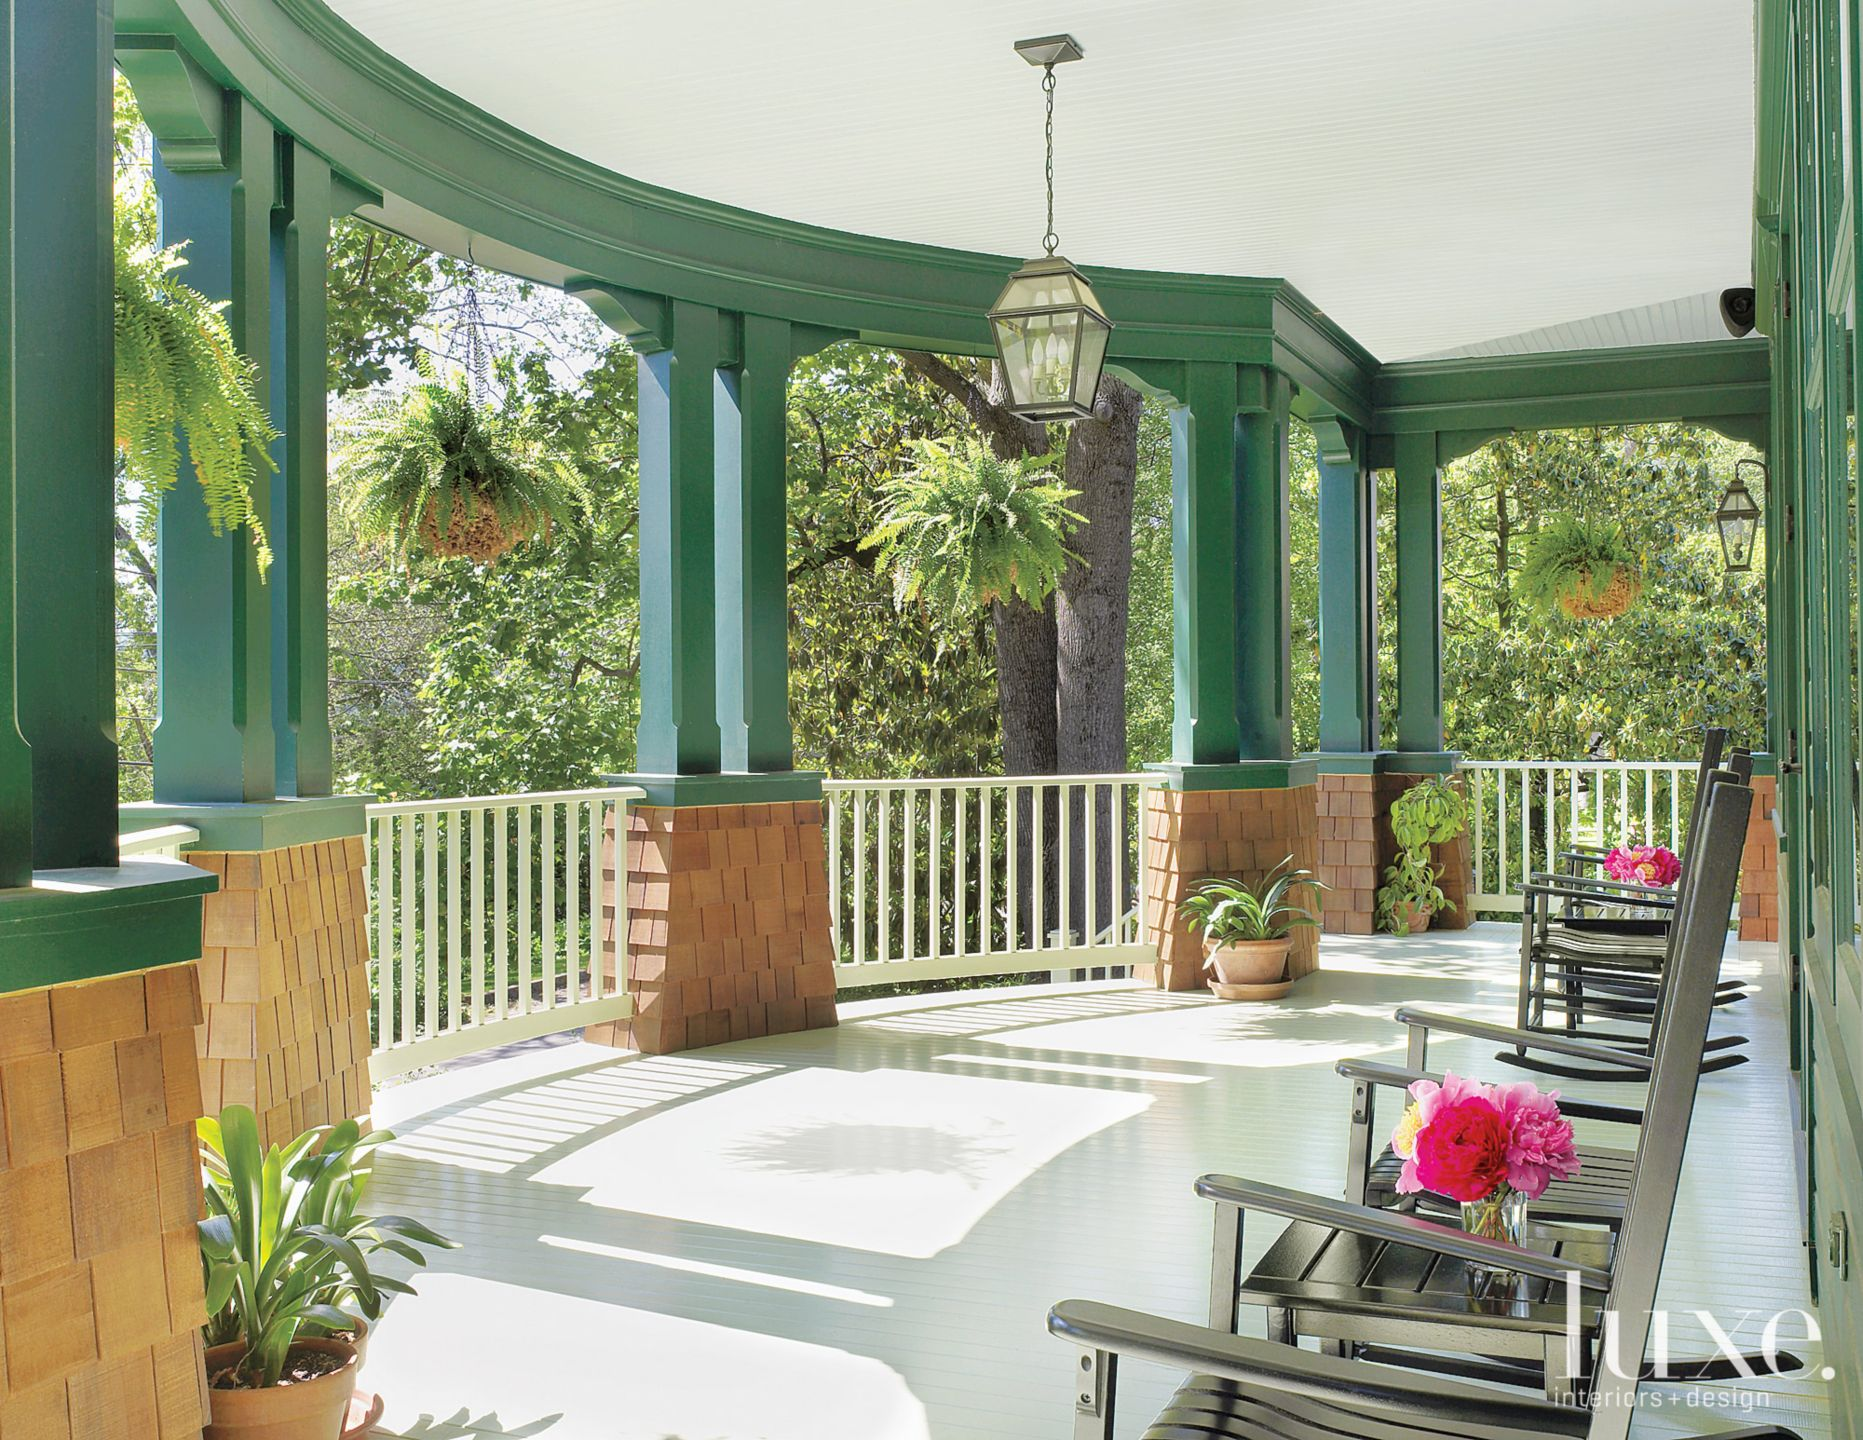 Country Green Back Porch with Rocking Chairs